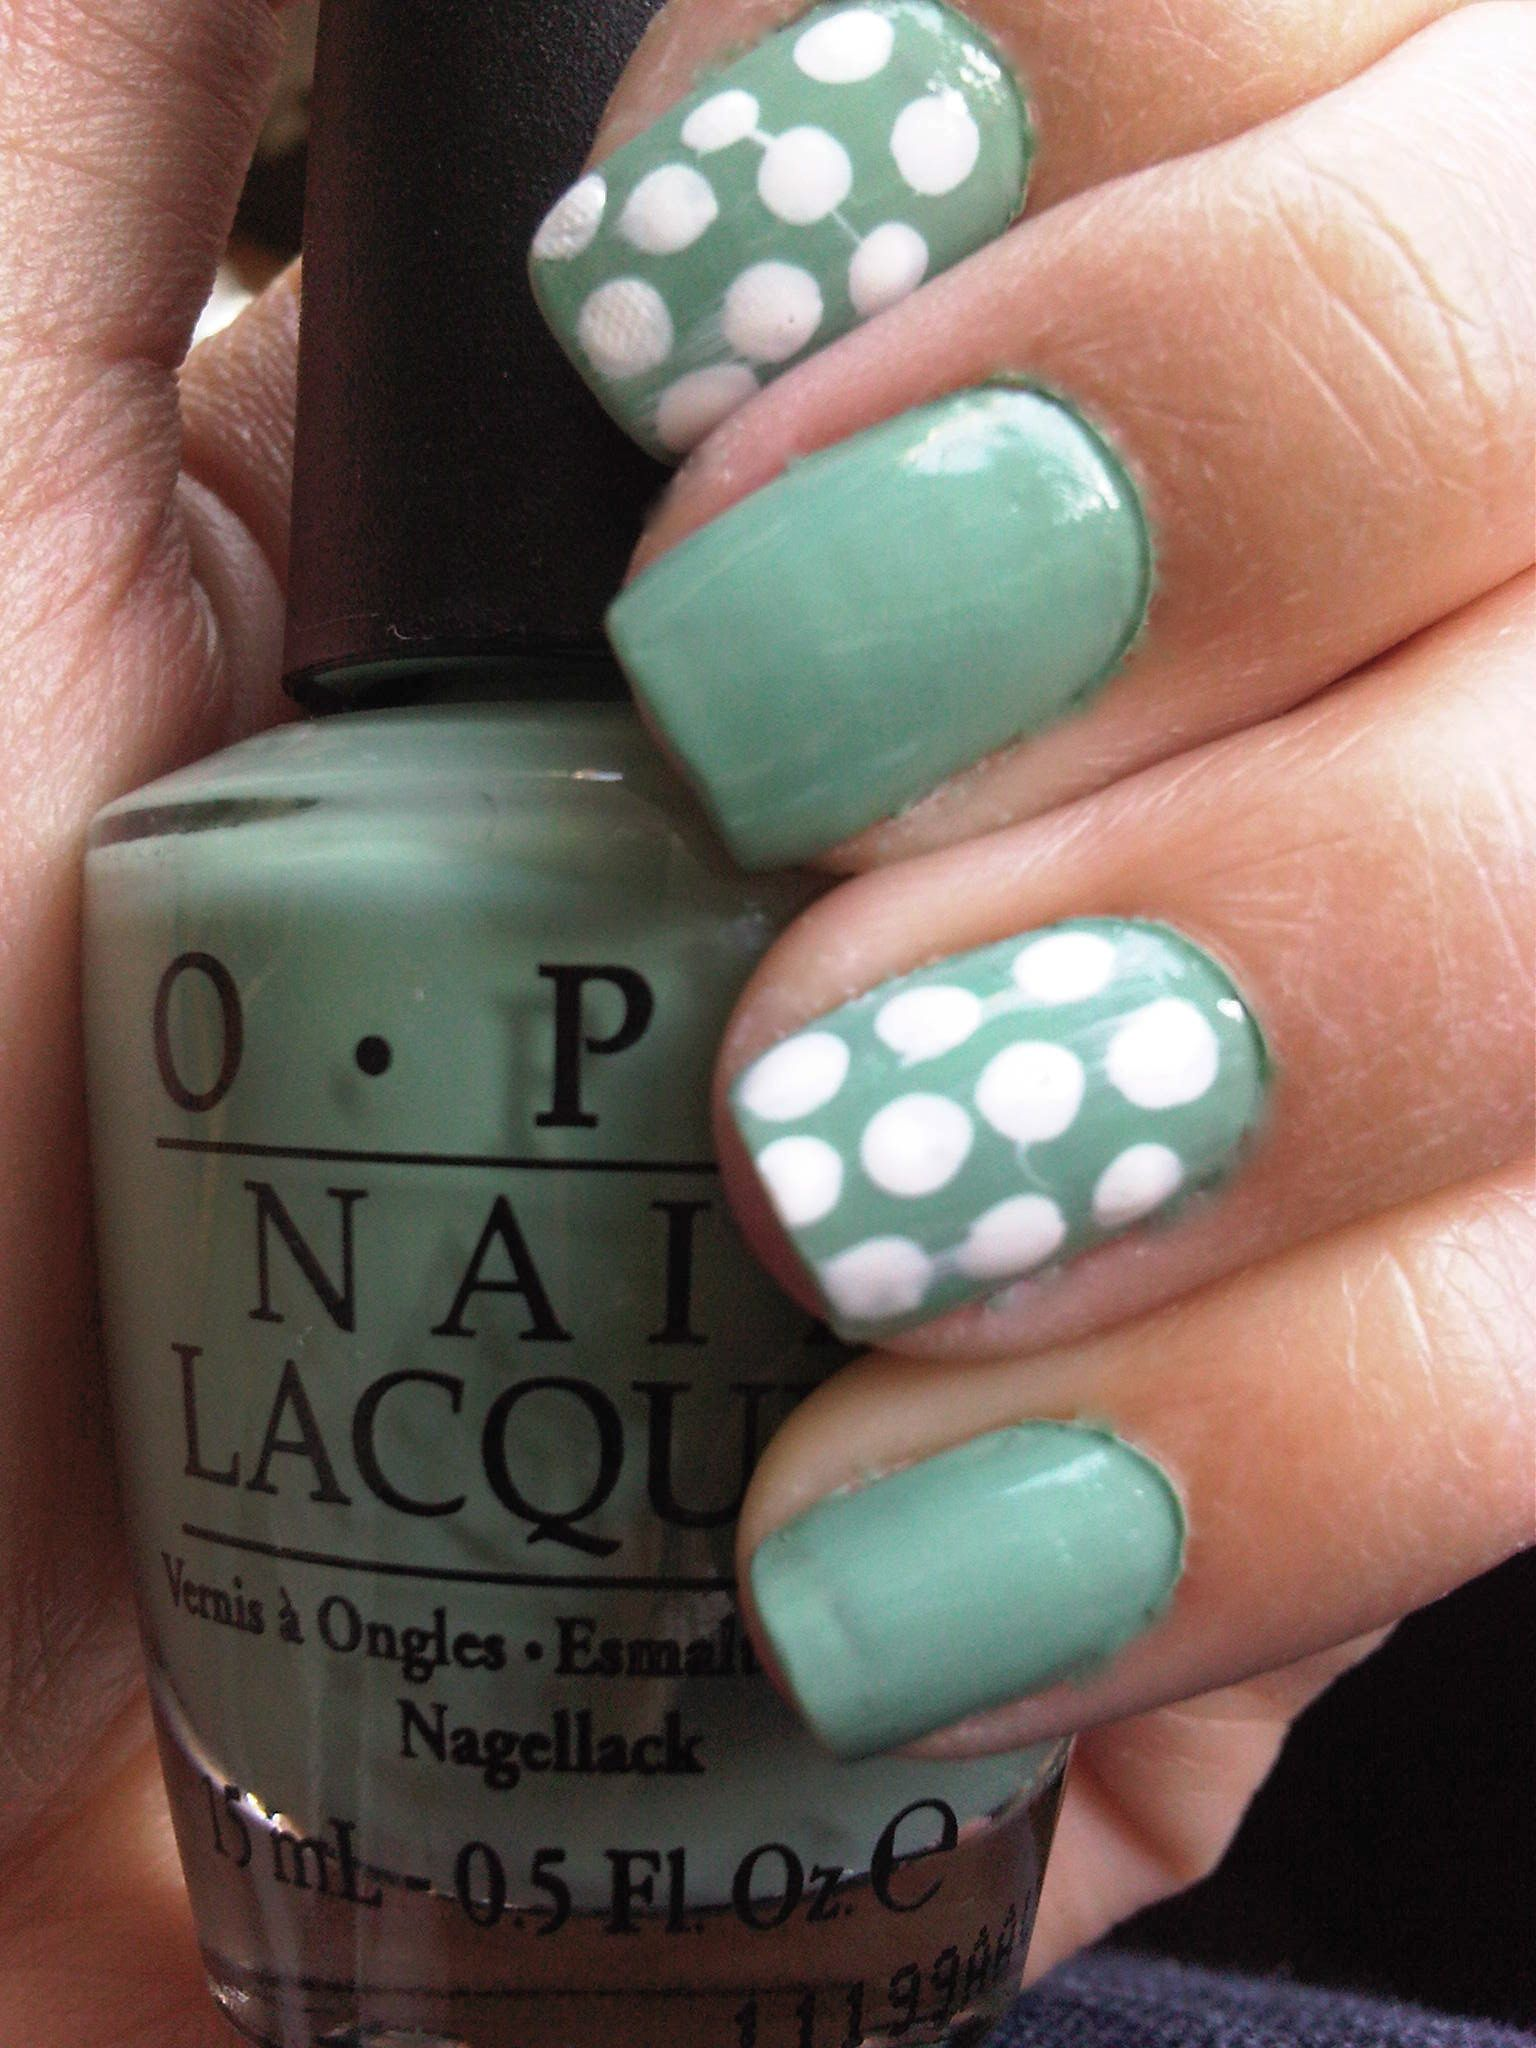 White on OPI - Mermaid's Tears. // the only thing I'm proud of about this is that I had the idea of breaking off the cotton of a Q-tip to use the stick as a dotting tool. Why are my polka dots so weird looking? .-.